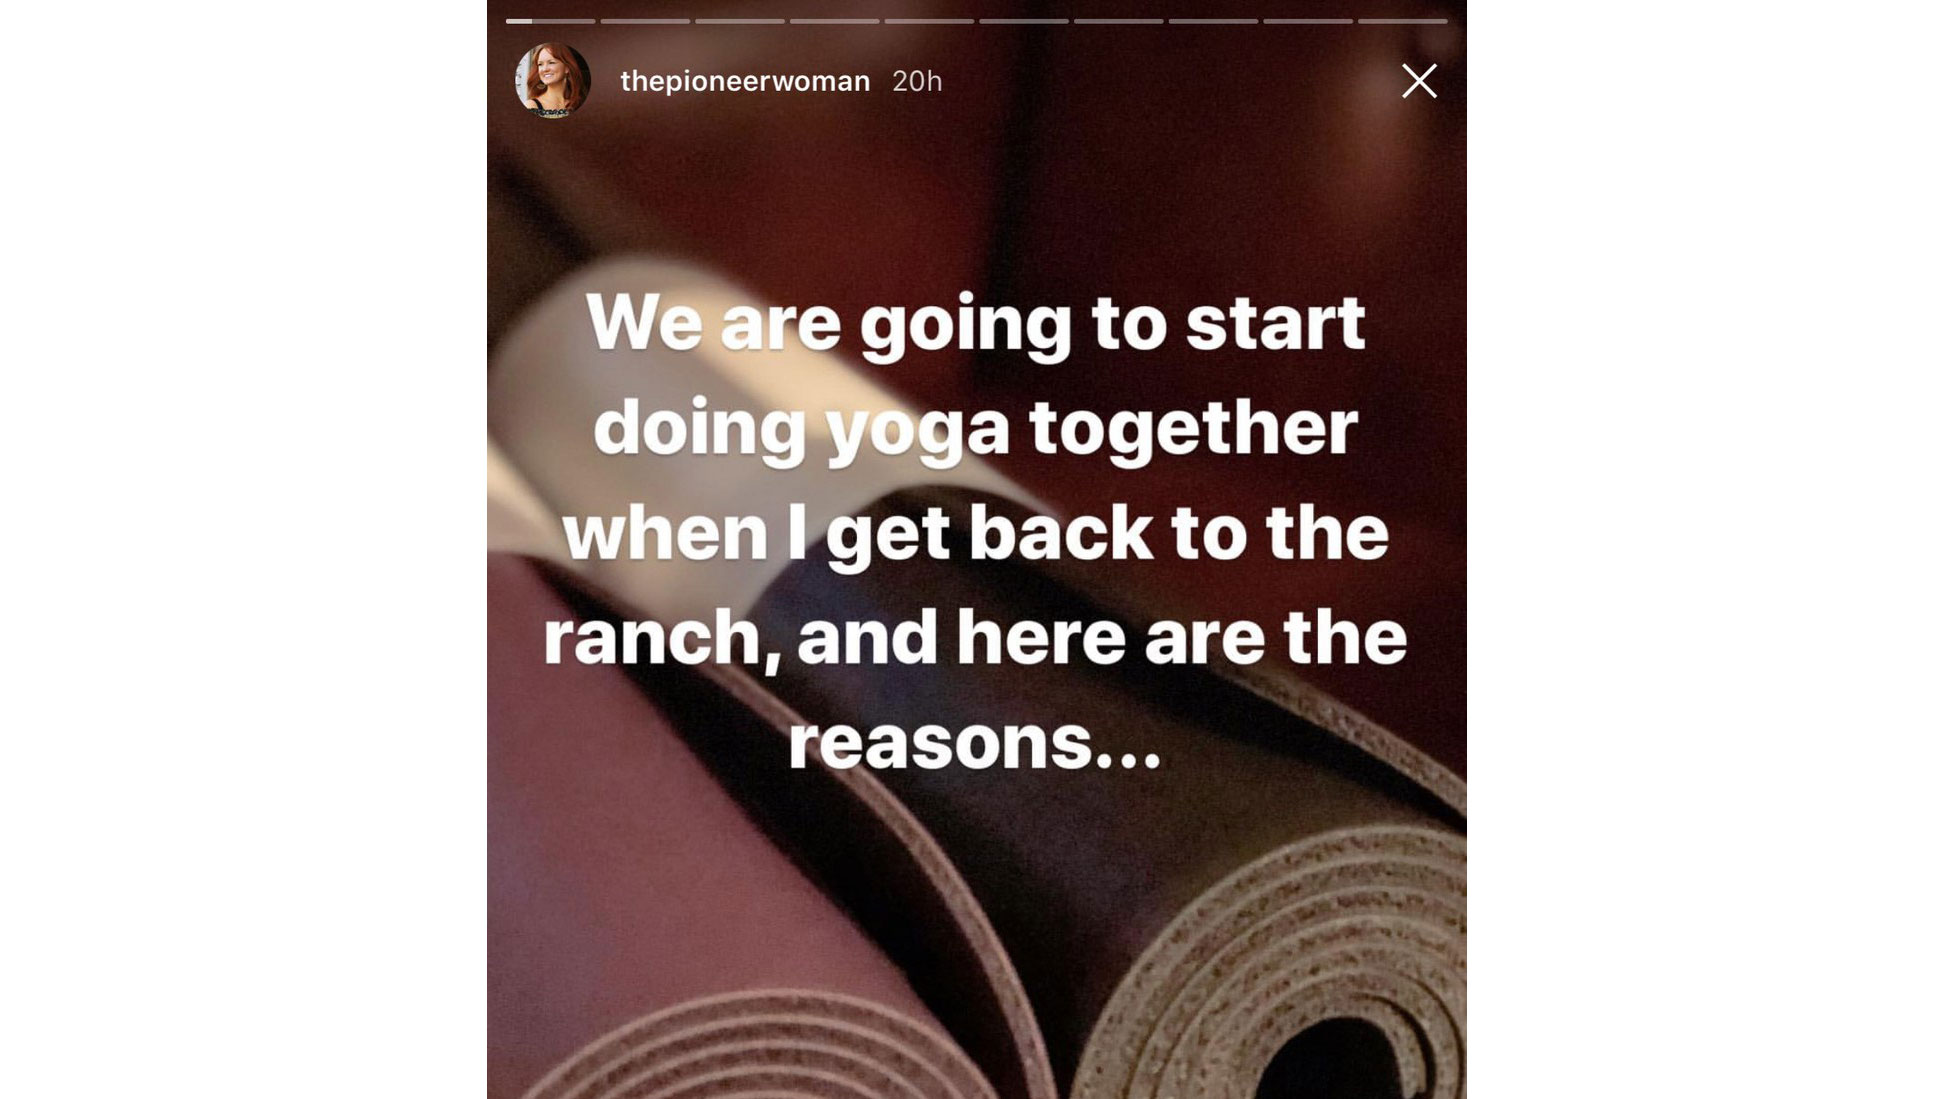 Ree Drummond Lists Reasons Started Doing Yoga